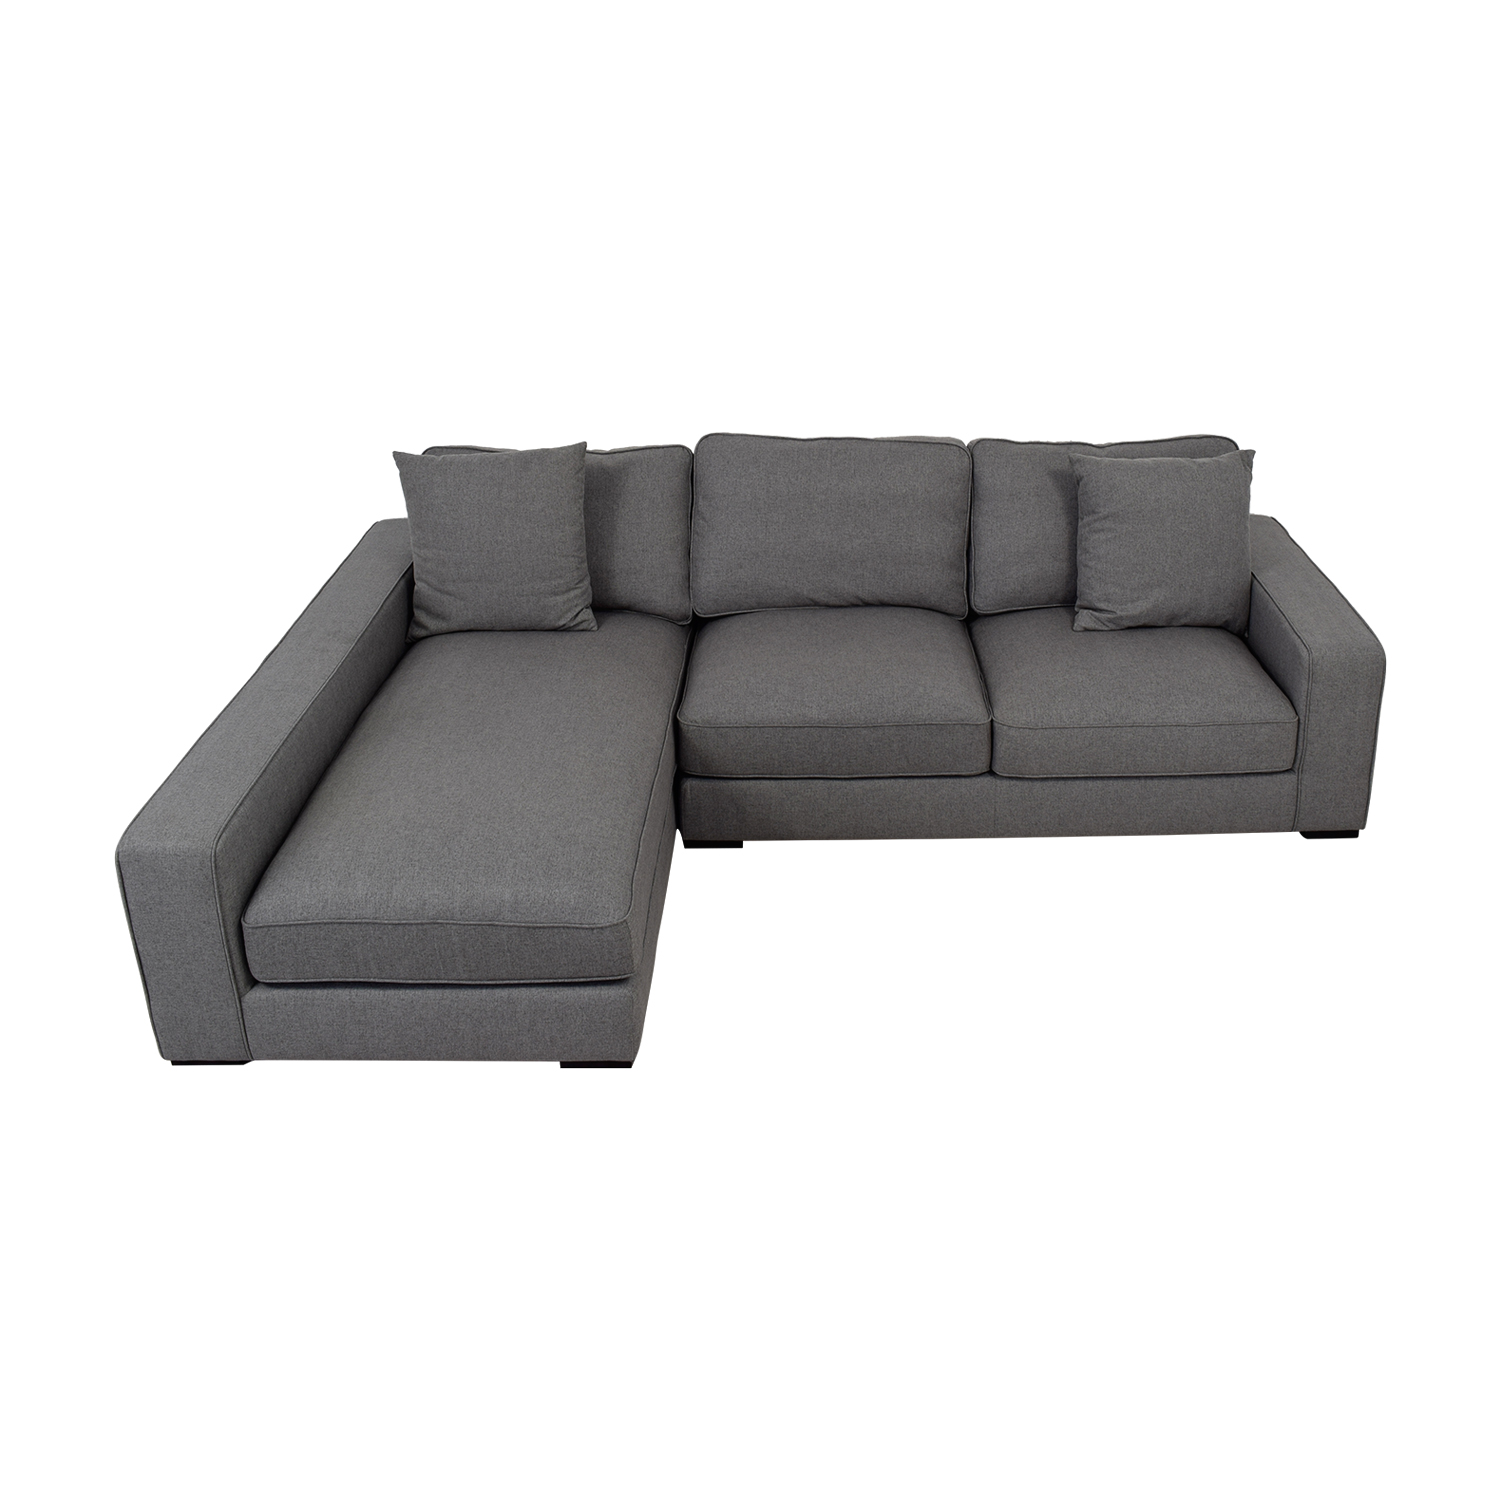 Ainsley Gray Left Chaise Sectional price